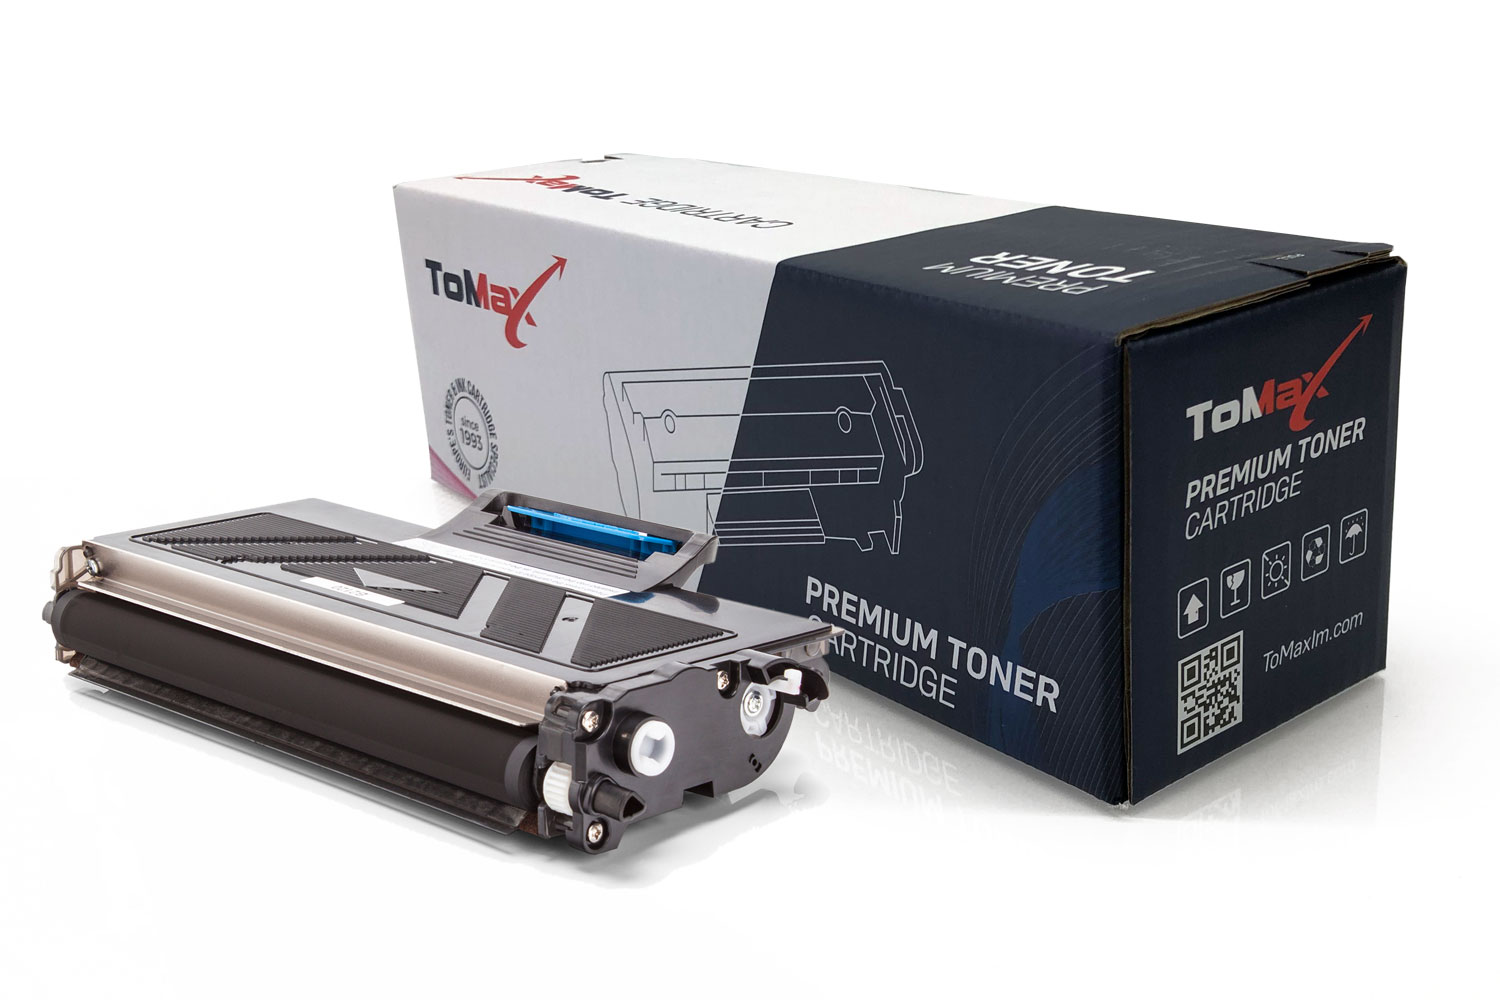 ToMax Premium Ink Cartridge replaces HP CH562EE / 301 XL Color